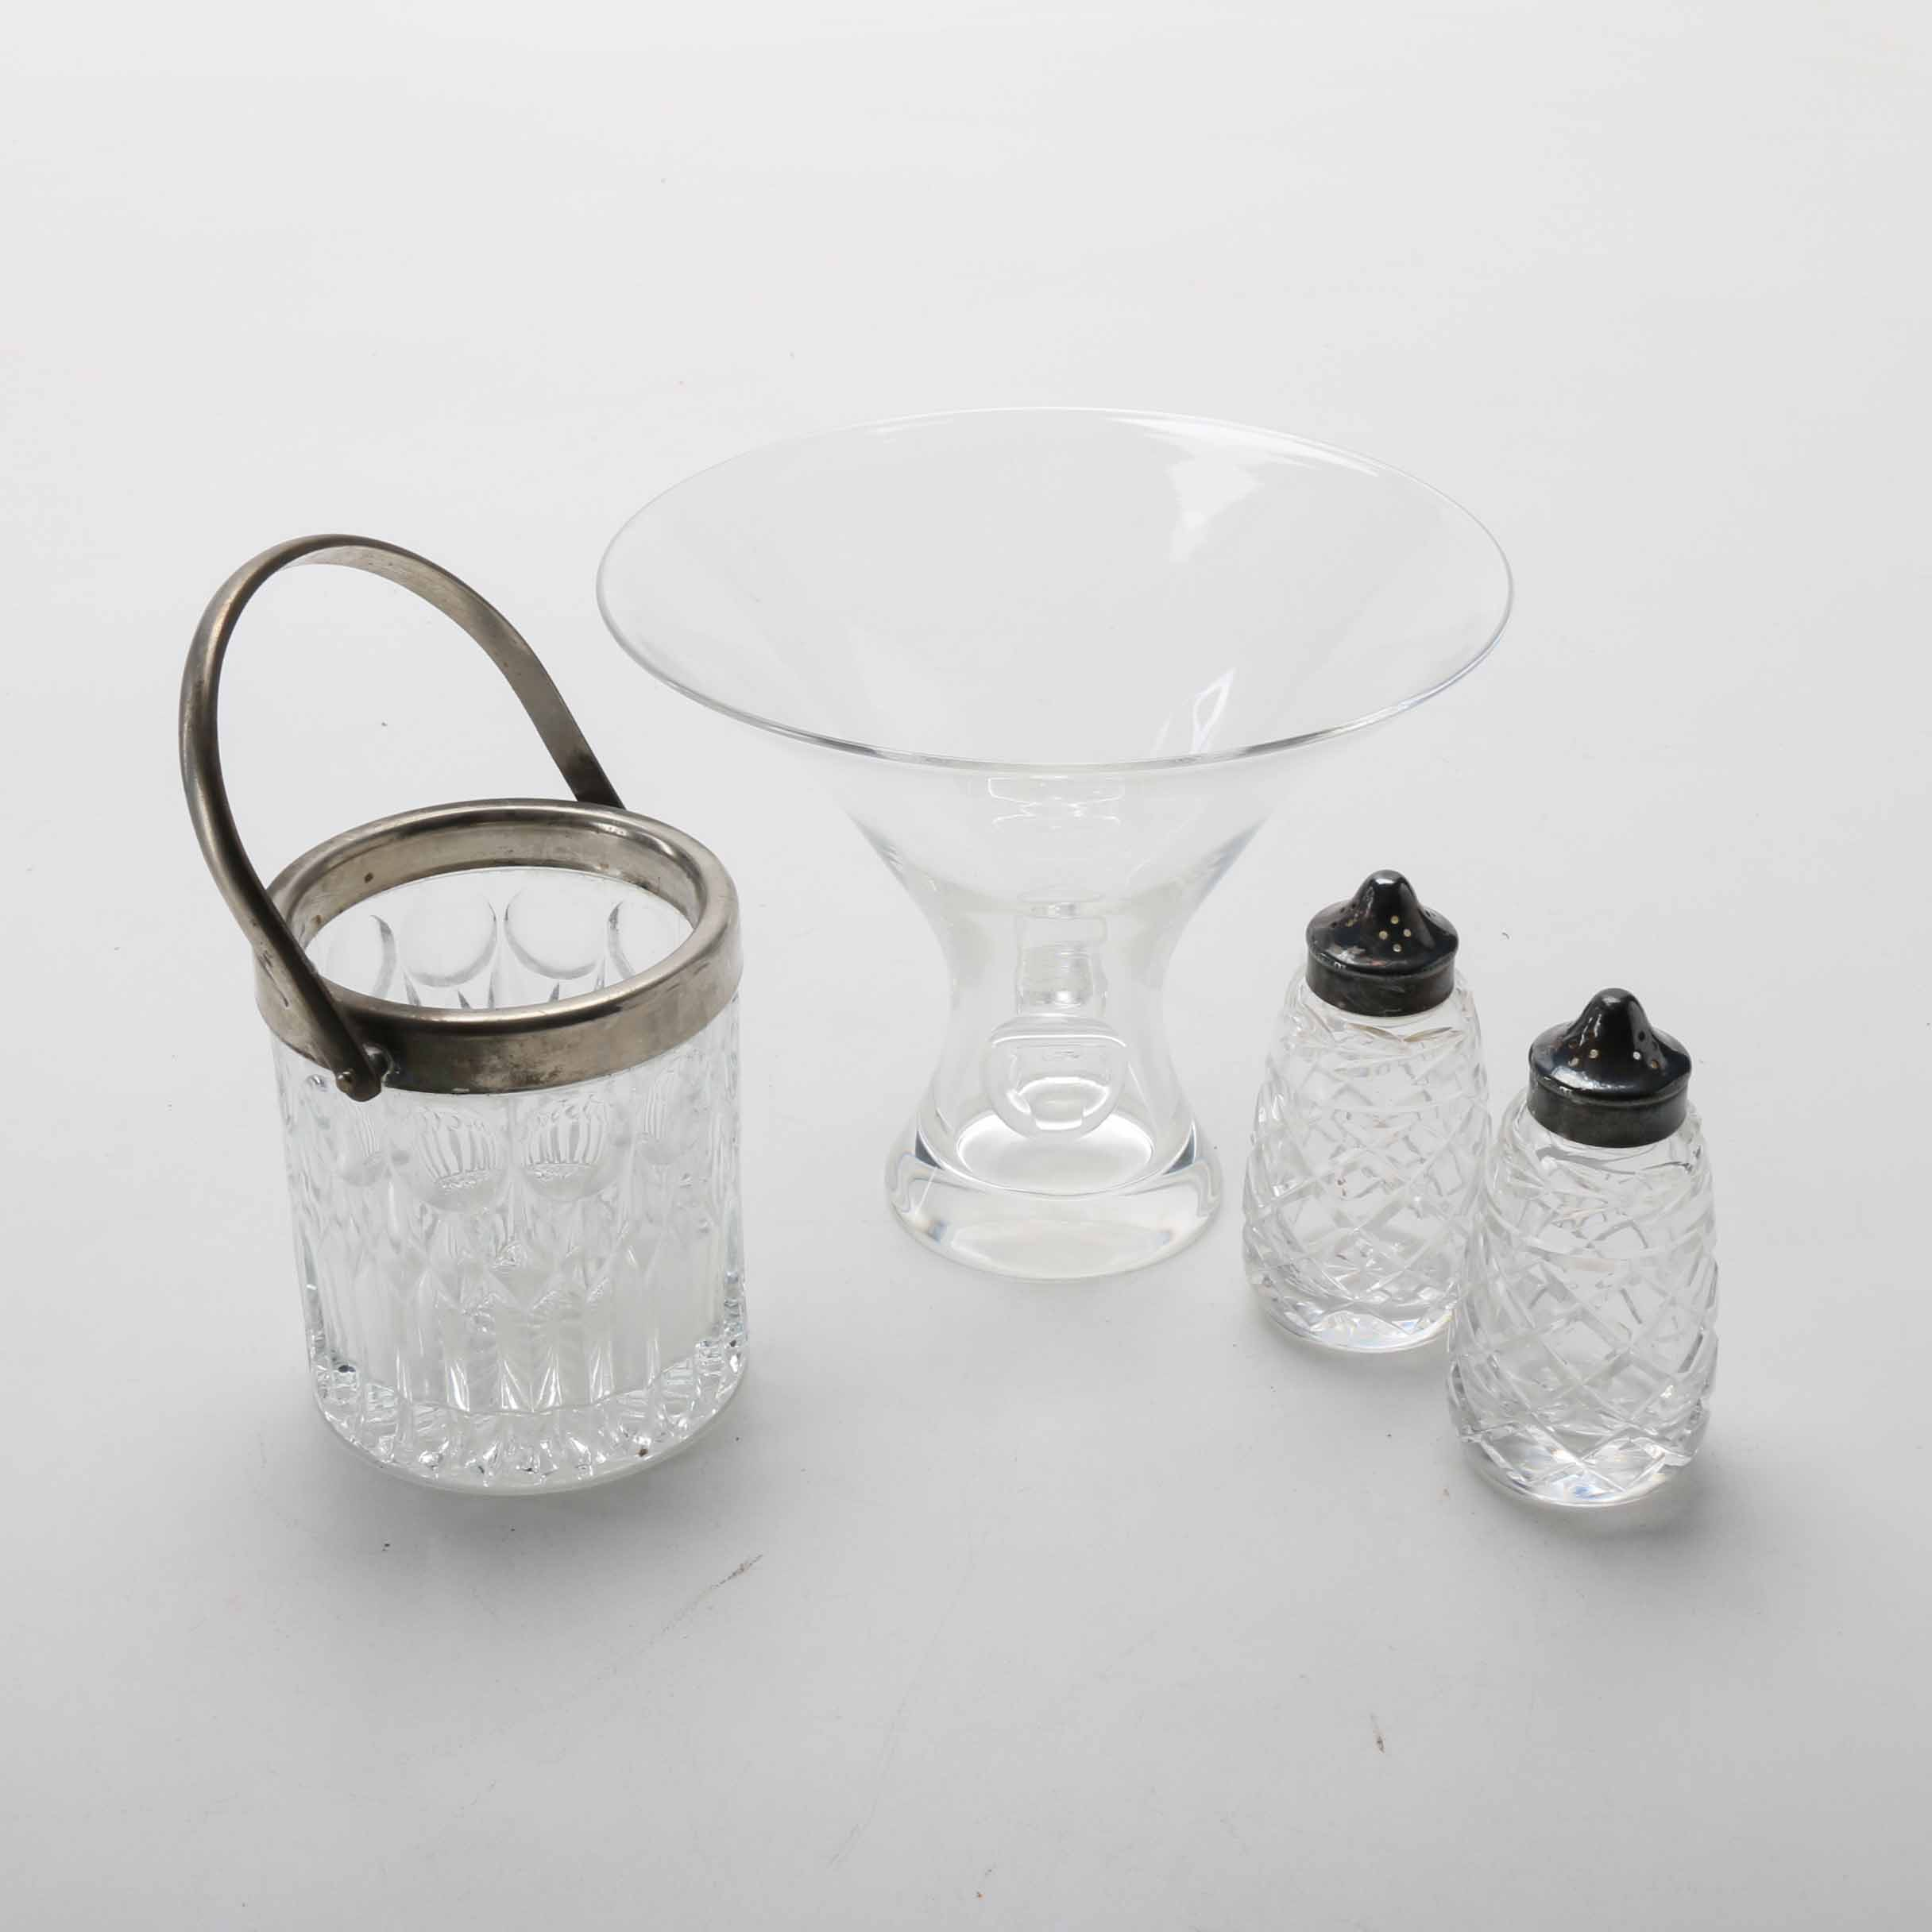 Steuben Bouquet Vase and Waterford Salt and Pepper Shakers